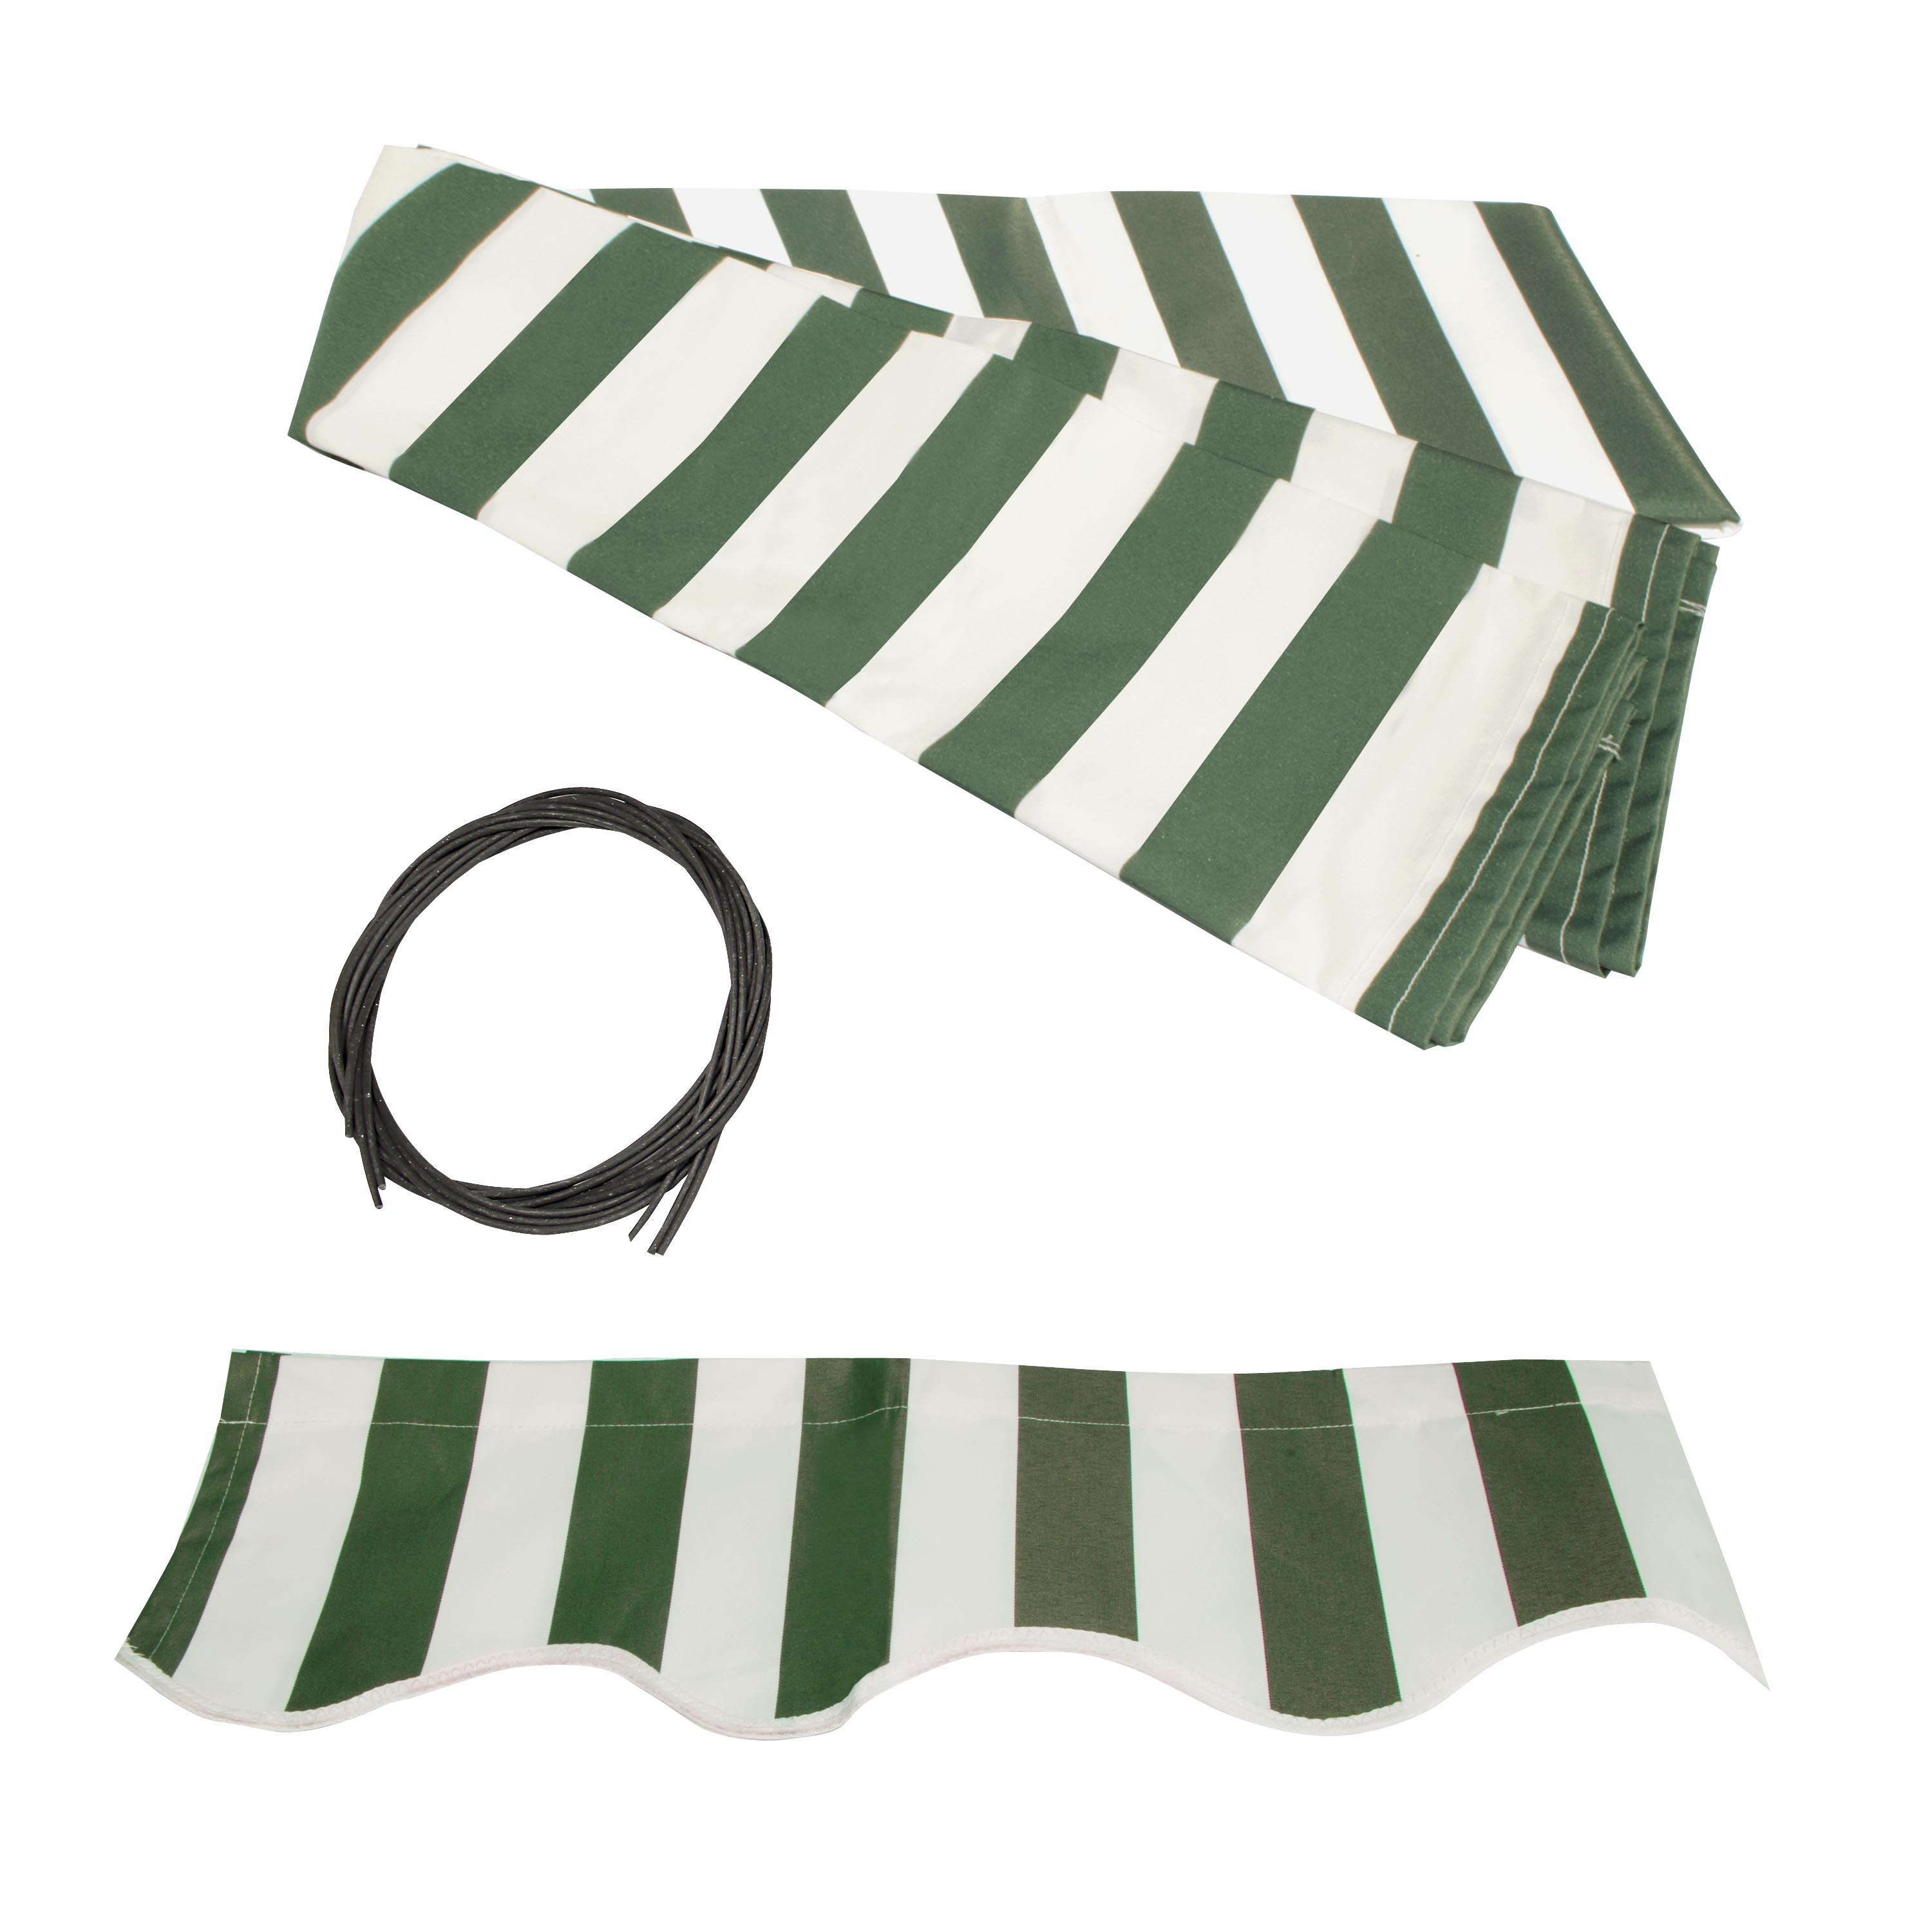 ALEKO 12'x10' Retractable Awning Fabric Replacement, Green and White Striped Color